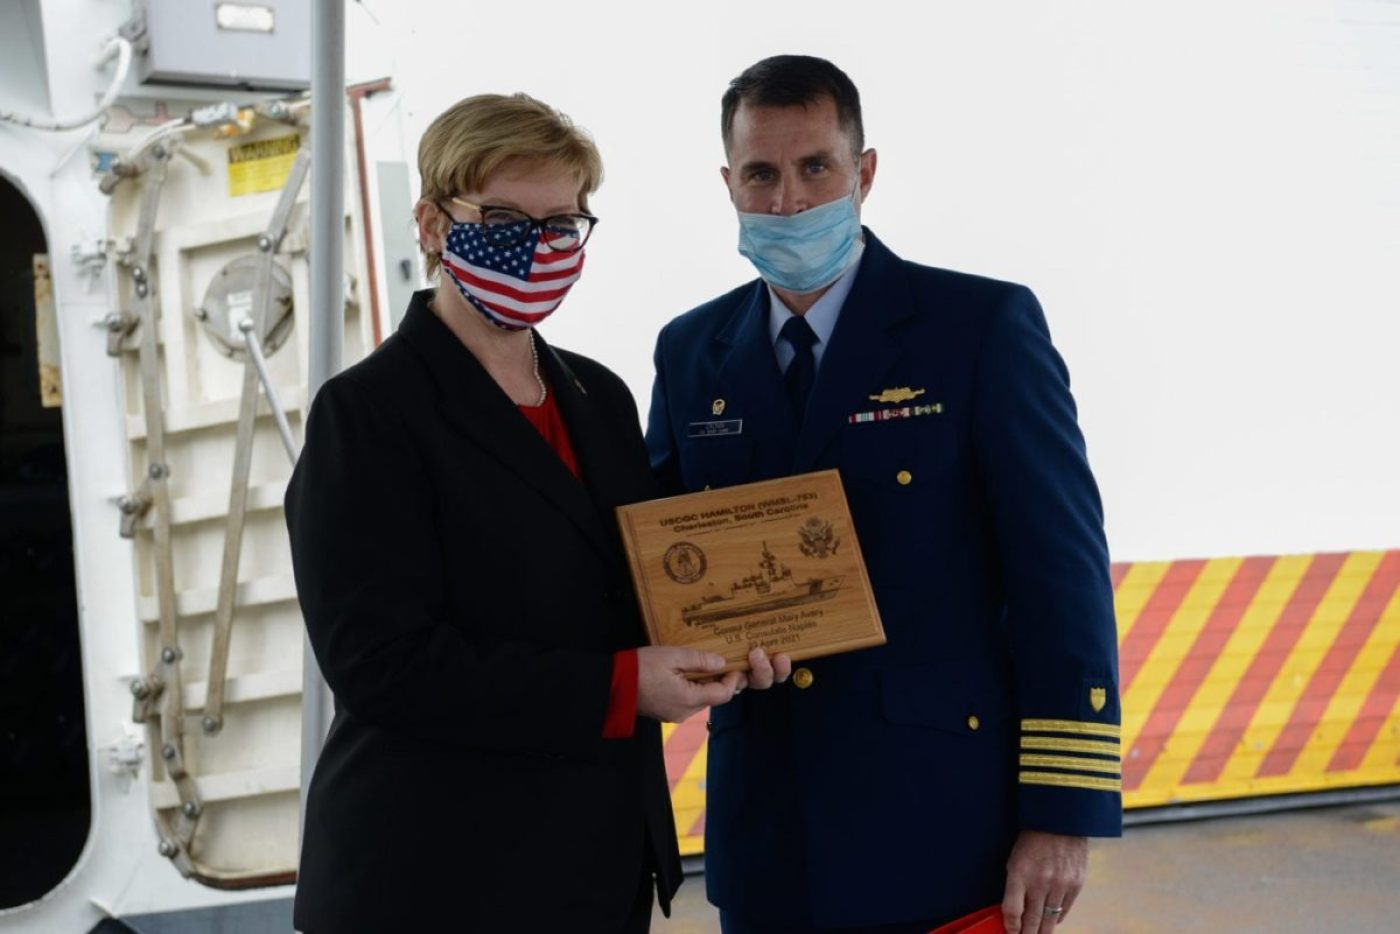 Consul General Mary Avery, U.S. Consulate Naples, and Capt. Timothy Cronin, commanding officer of USCGC Hamilton (WMSL 753) pose for a photo on the flight deck of Hamilton after Cronin presented Avery with a plaque, April 22, 2021. (U.S. Coast Guard photo by Petty Officer 3rd Class Sydney Phoenix)